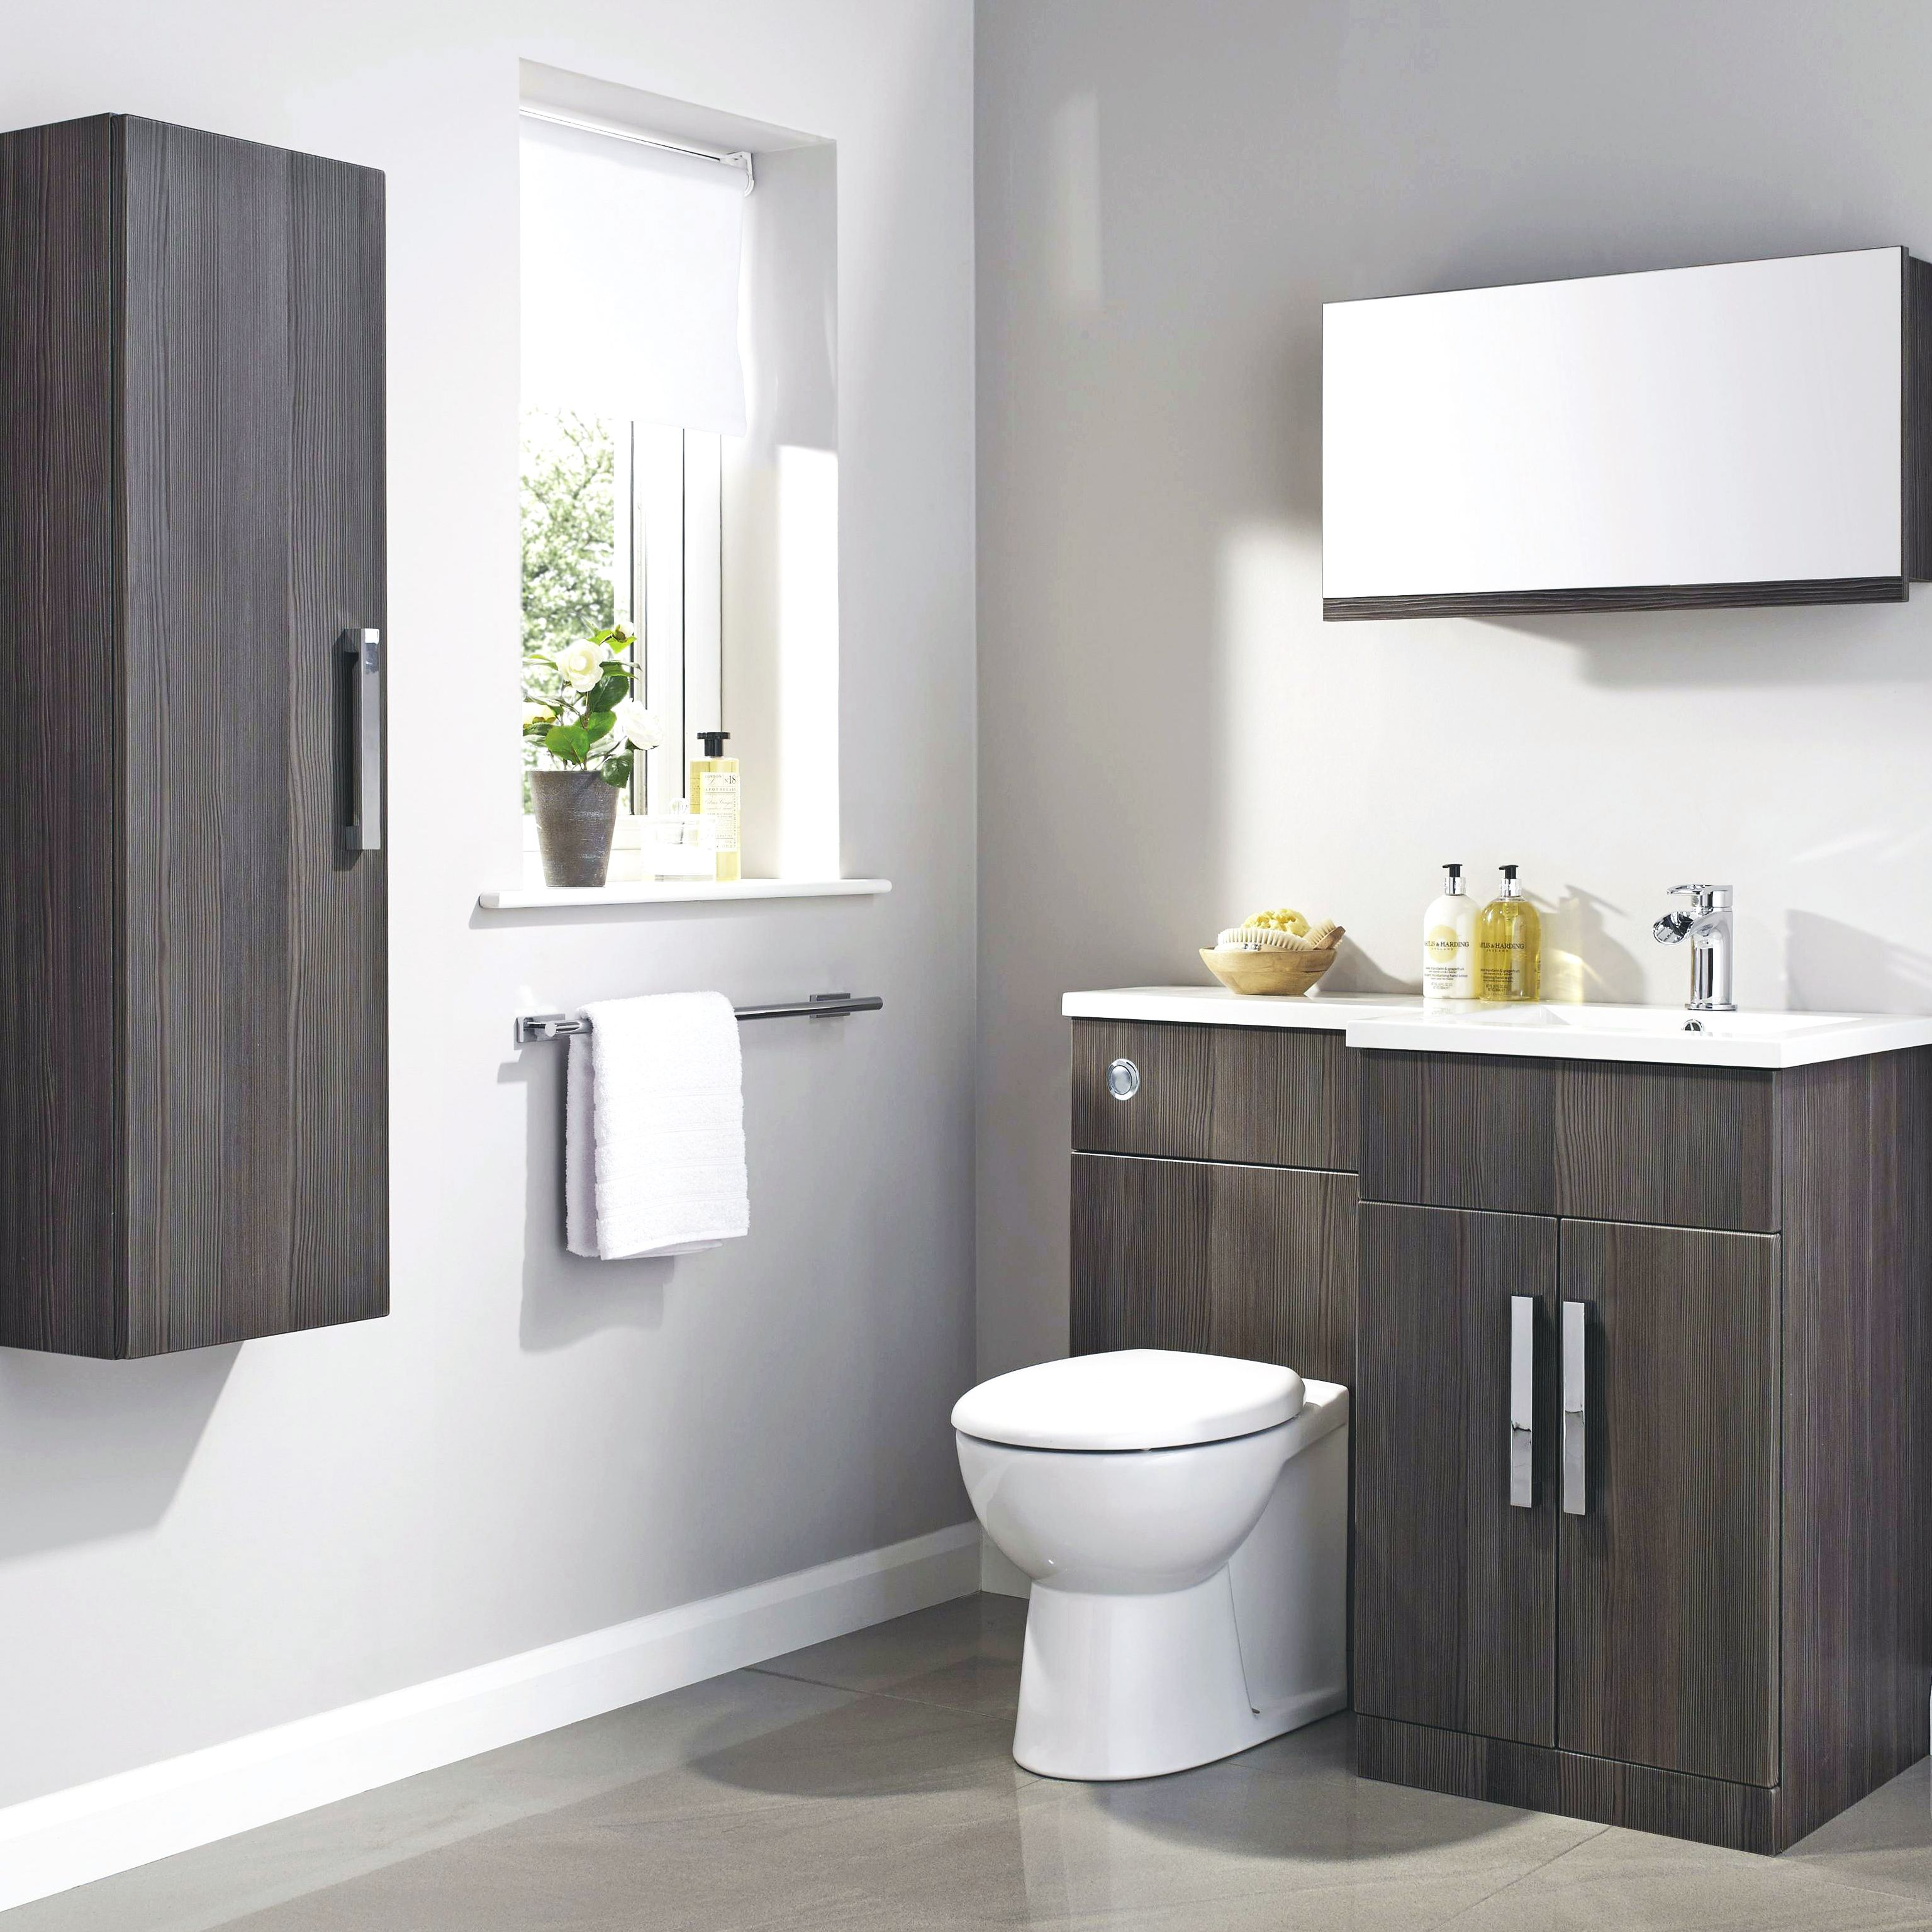 Image Result For Classic Bathroom Vanity Units